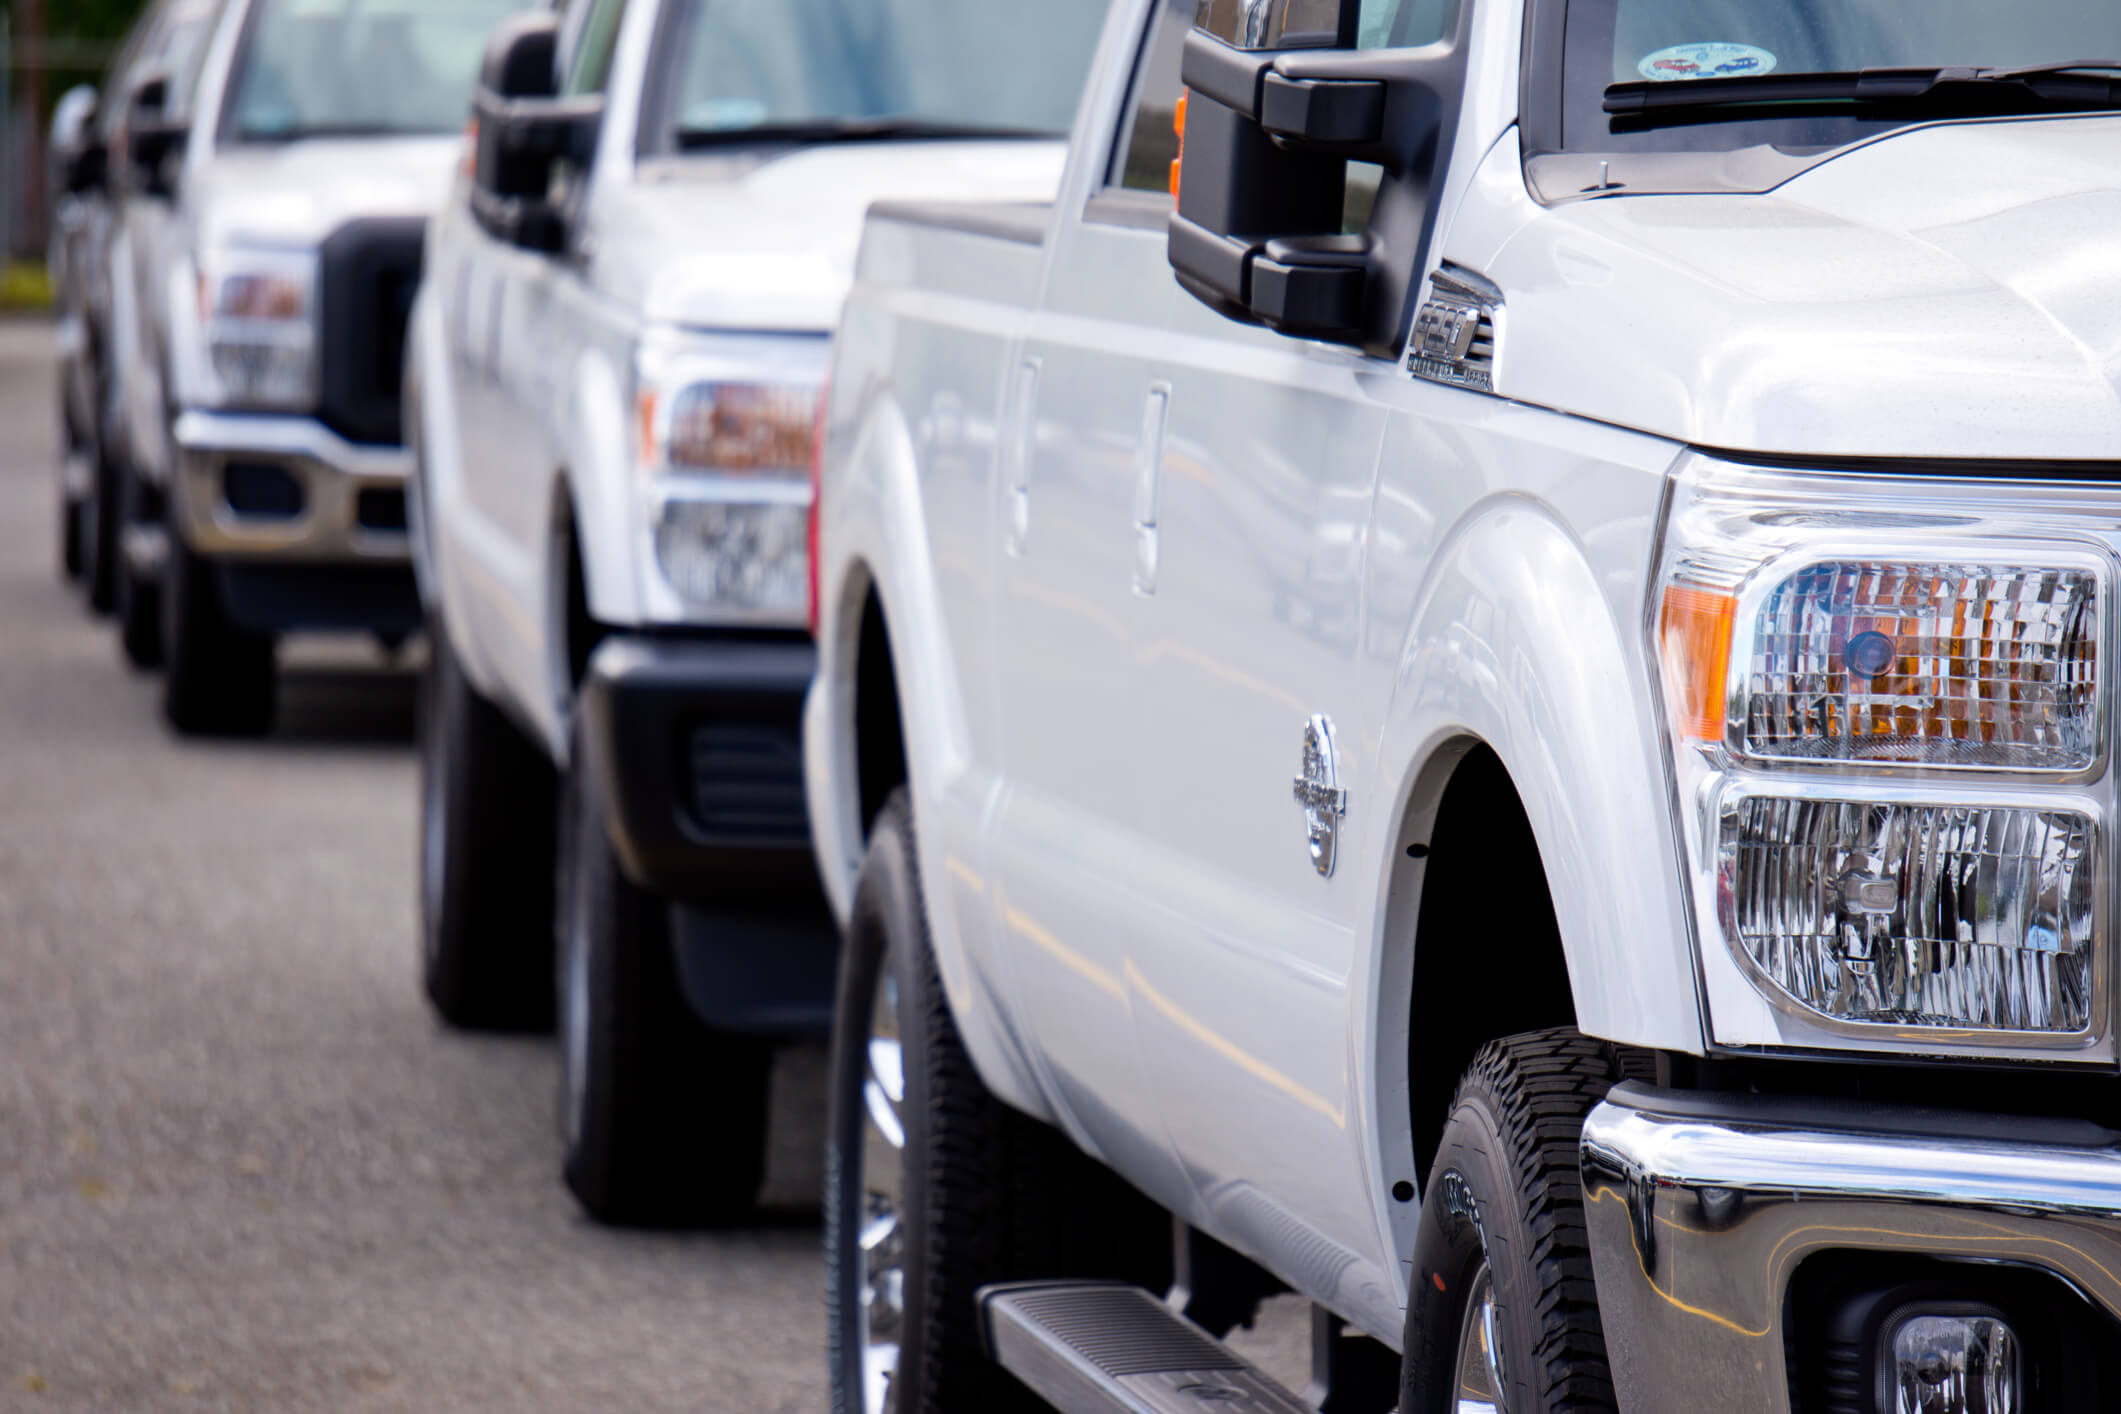 Ford Super Duty pick-up trucks lined up.